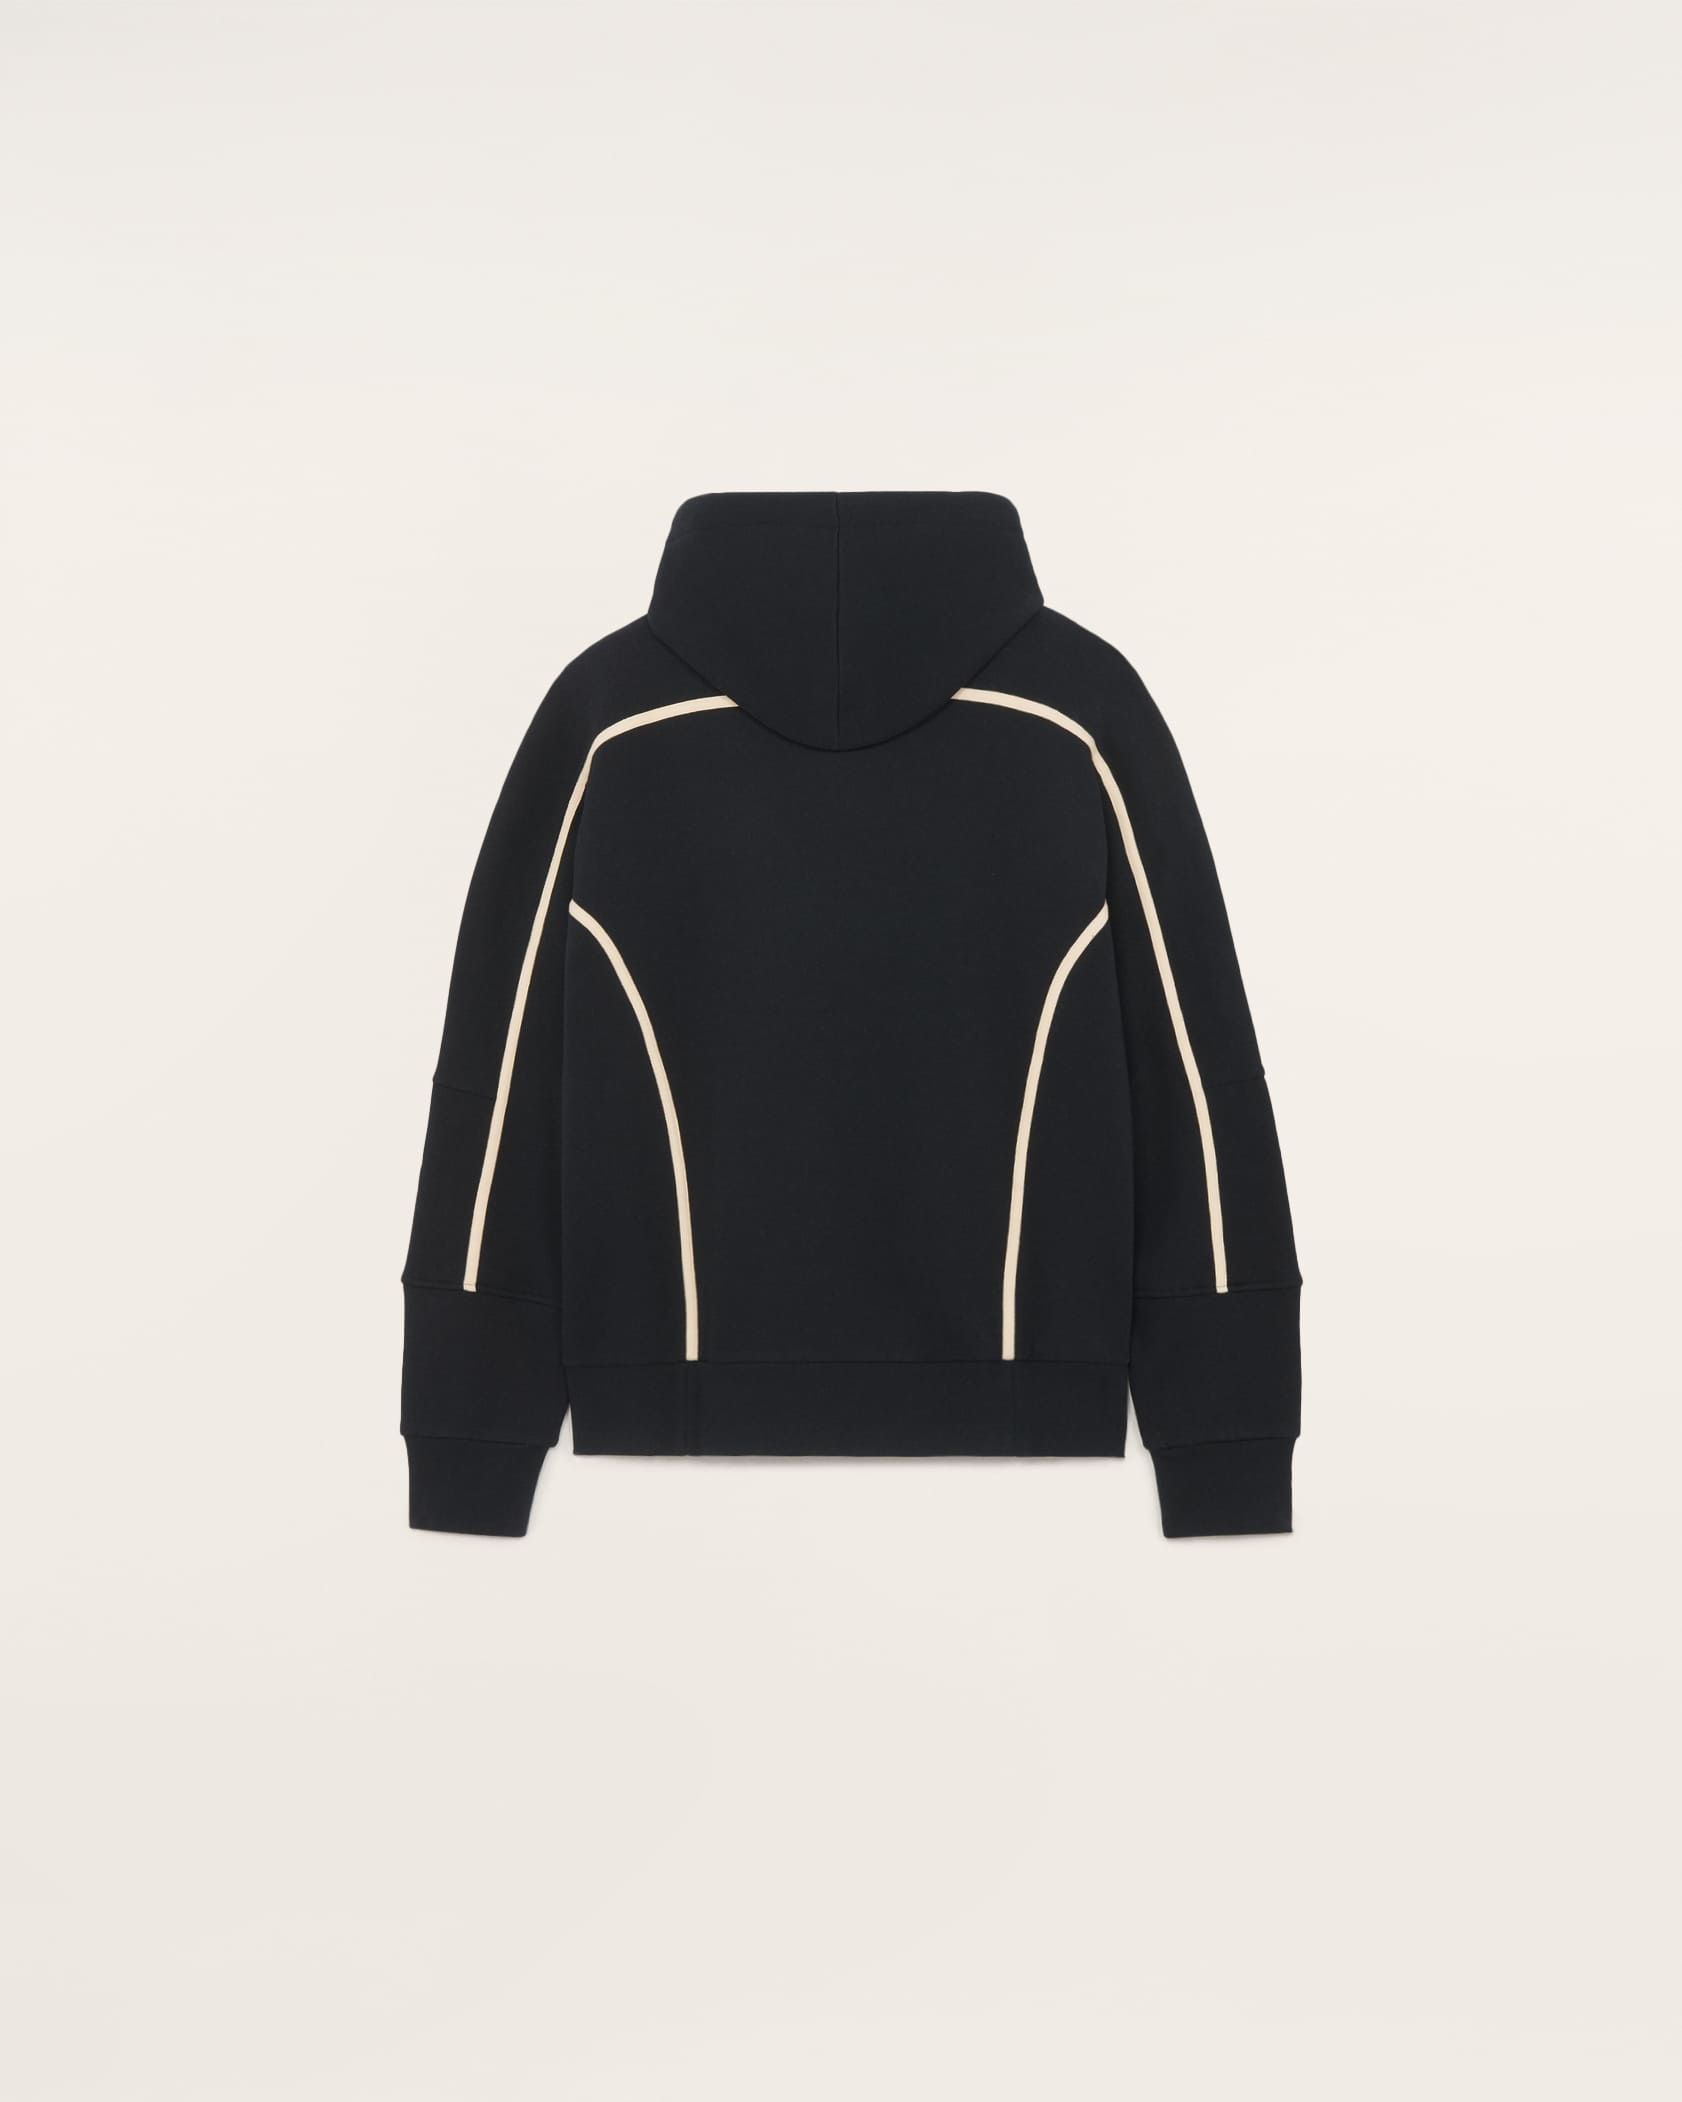 Le sweatshirt Grain